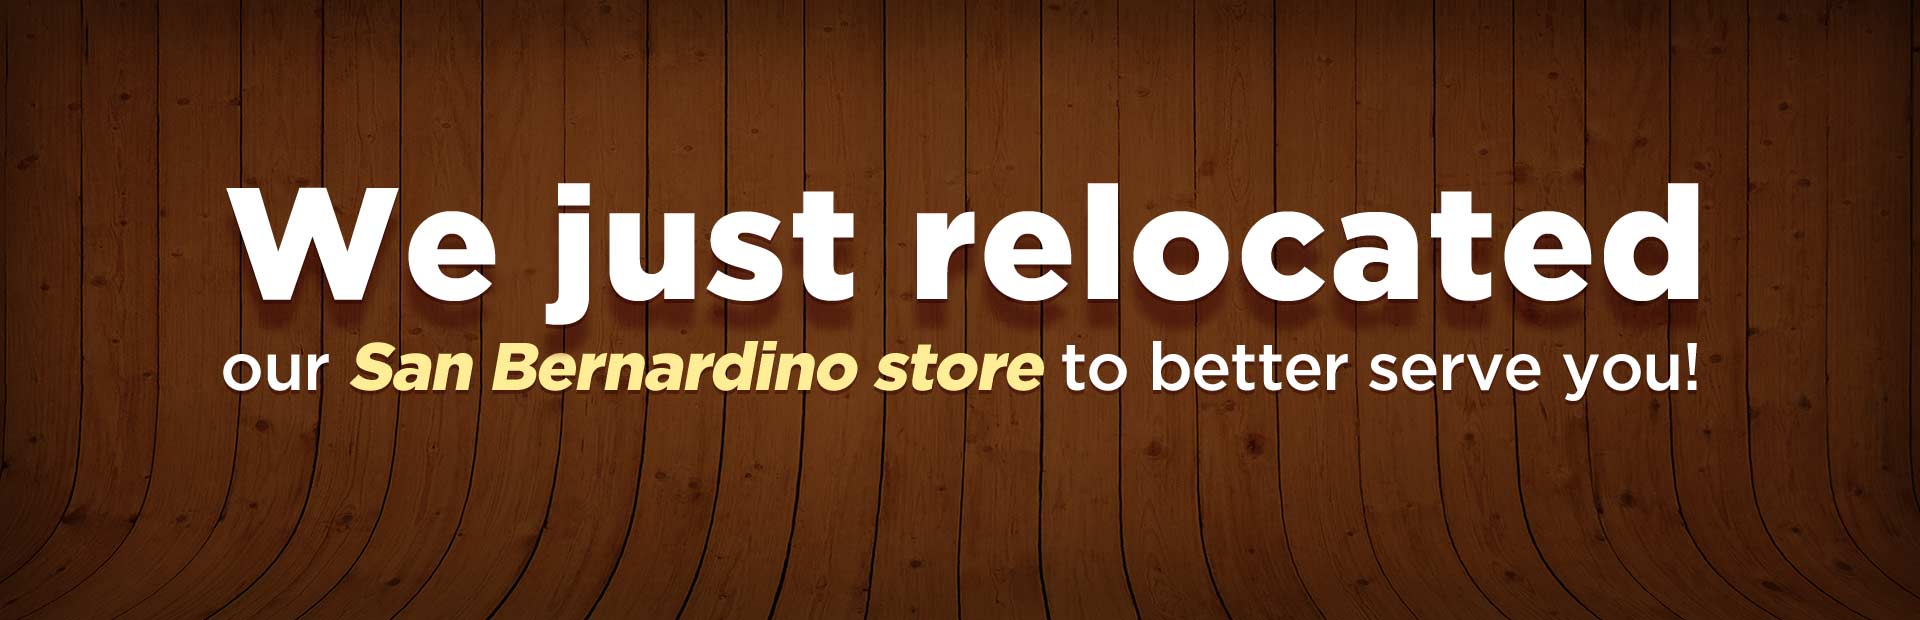 We just relocated our San Bernardino store to better serve you!